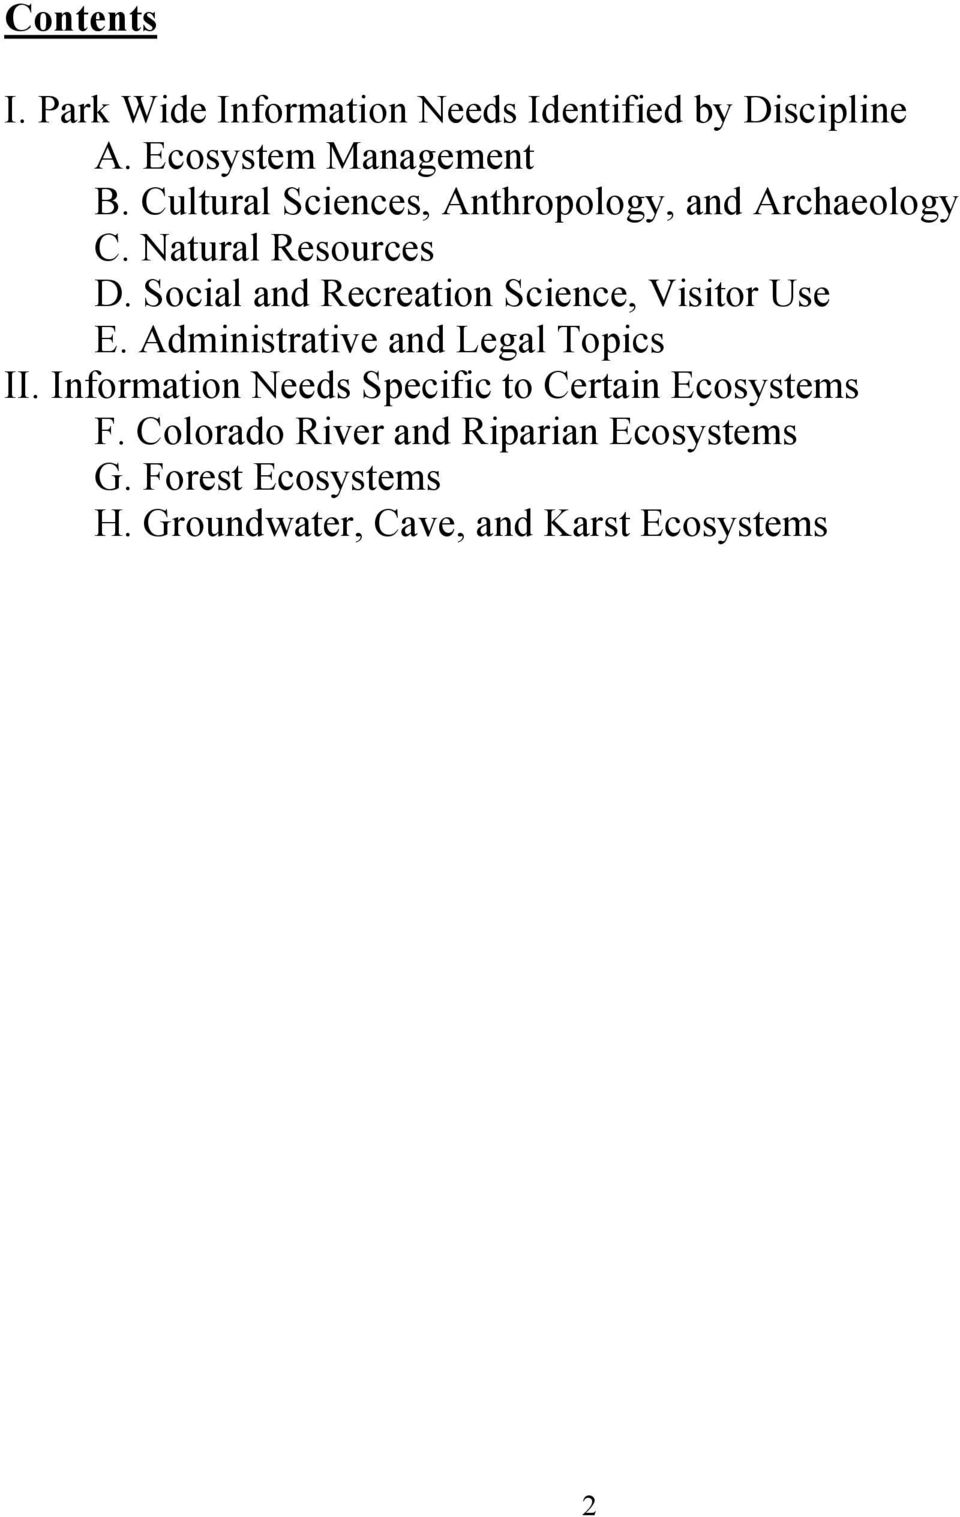 Parks and Recreation Management report topic ideas